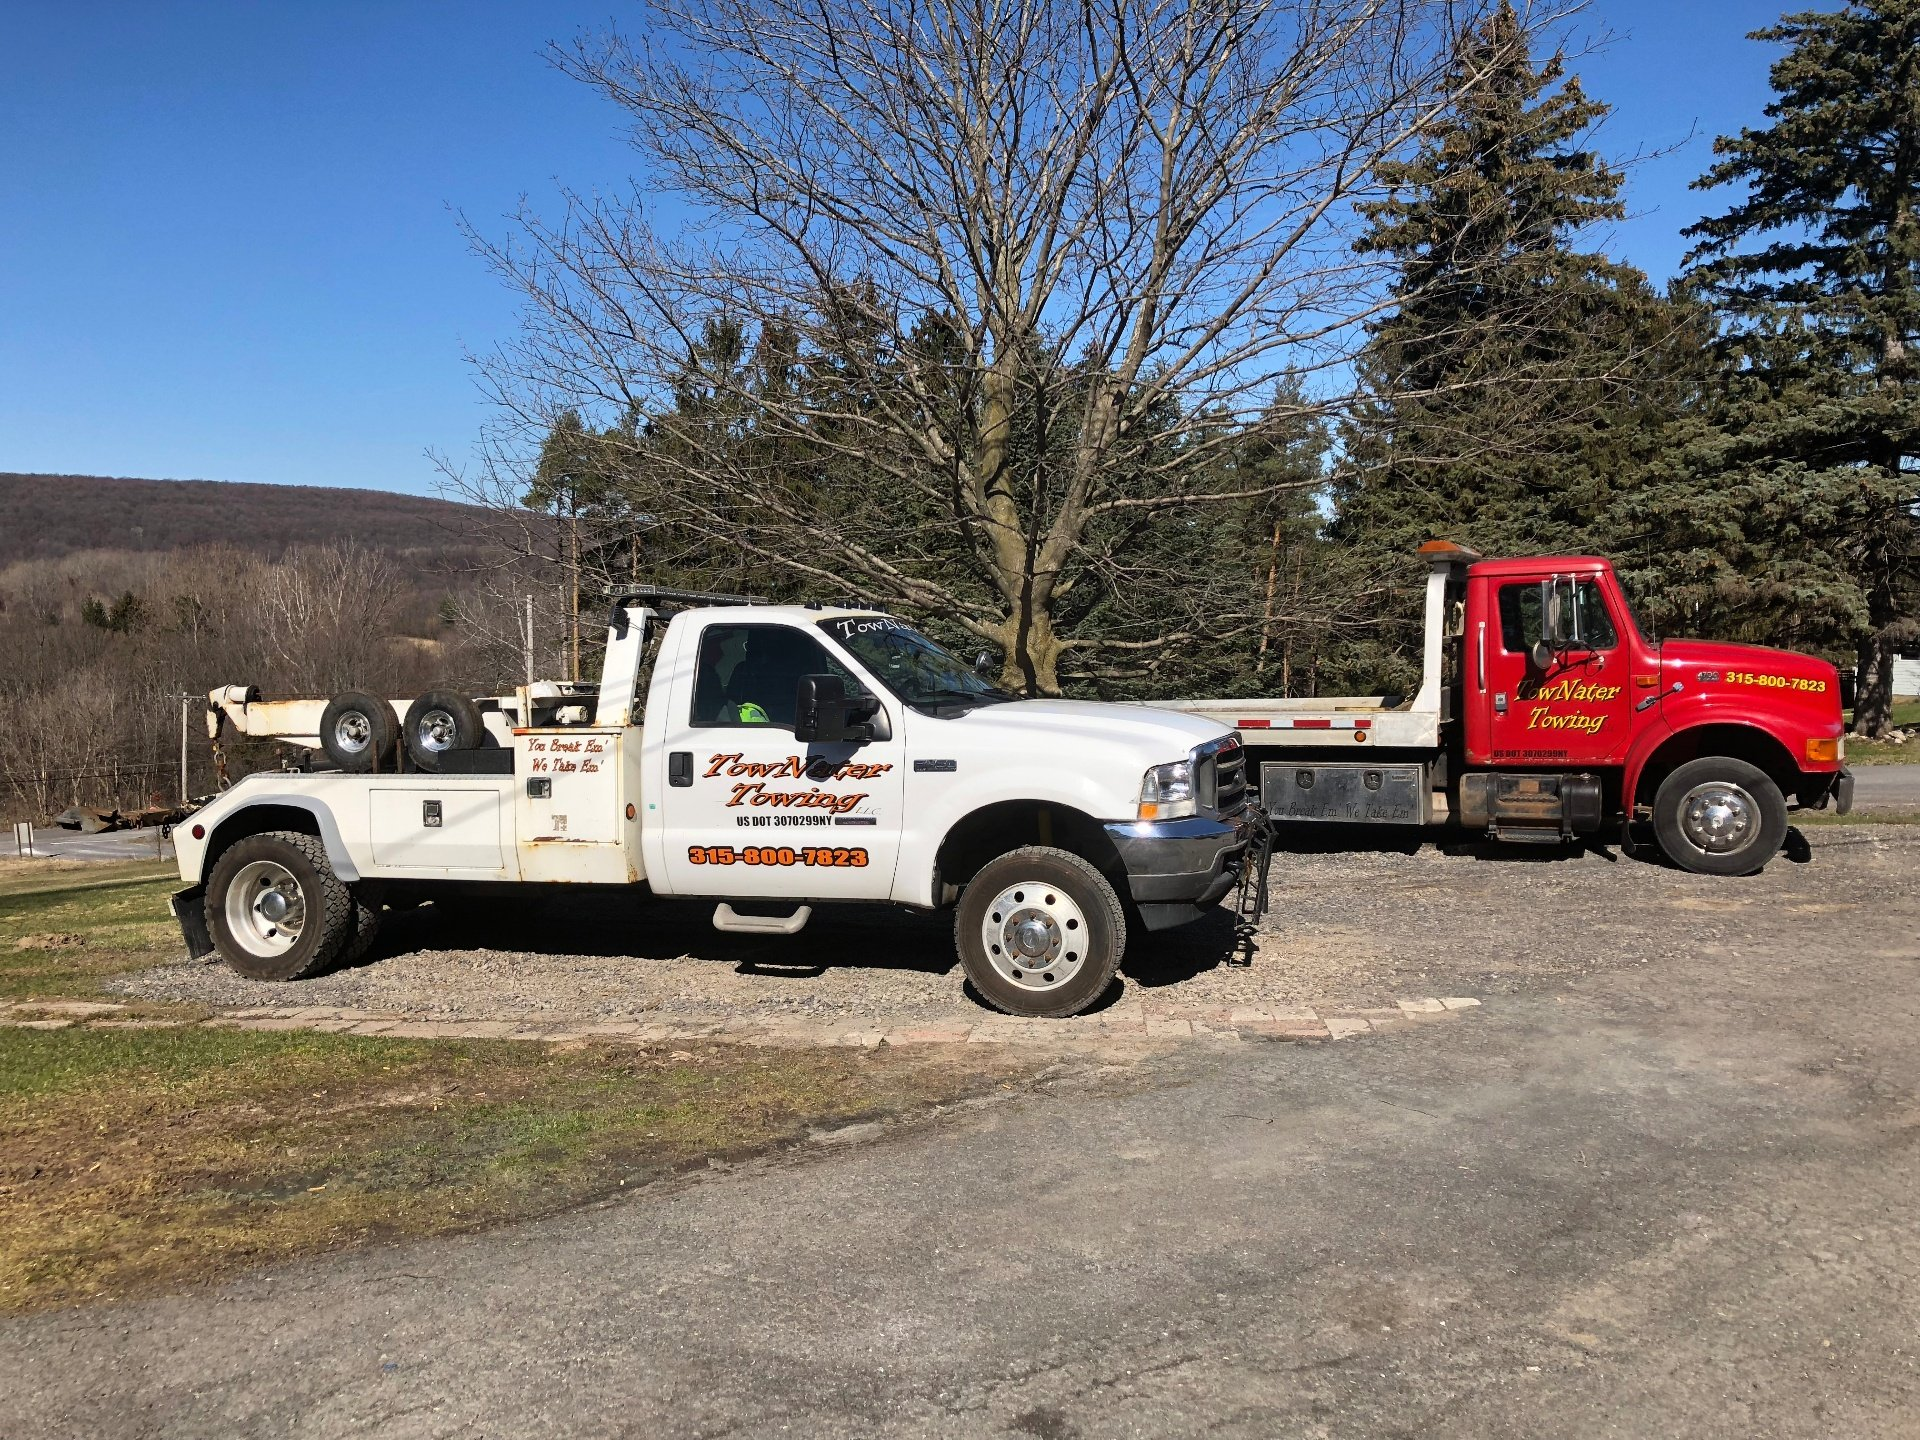 TowNater Towing LLC. 24 Hour Road